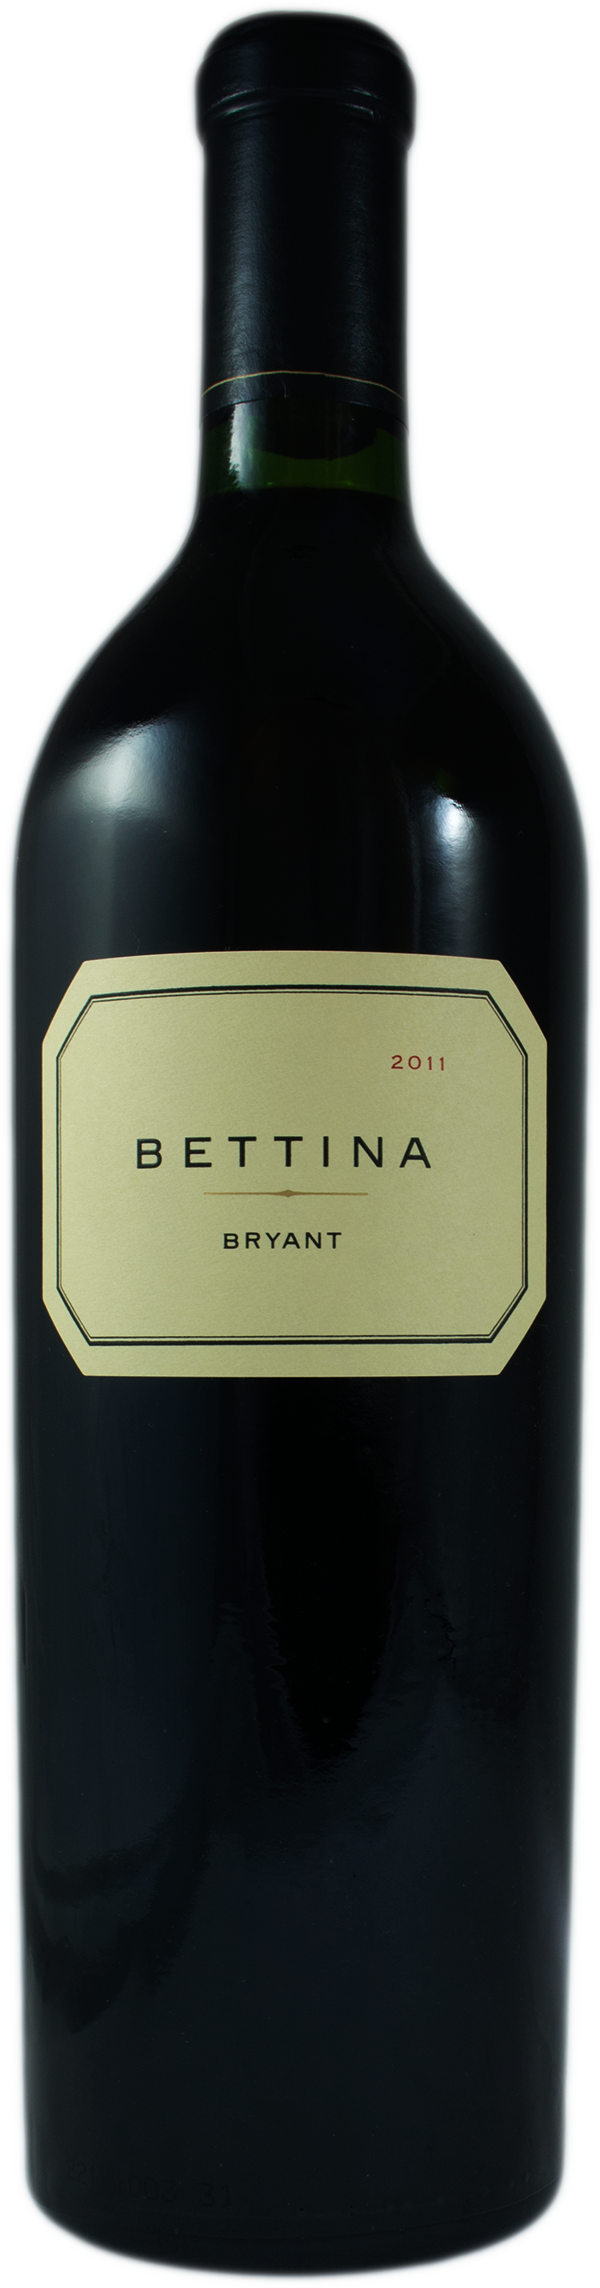 Bryant Family Vineyard 'Bettina' Proprietary Red